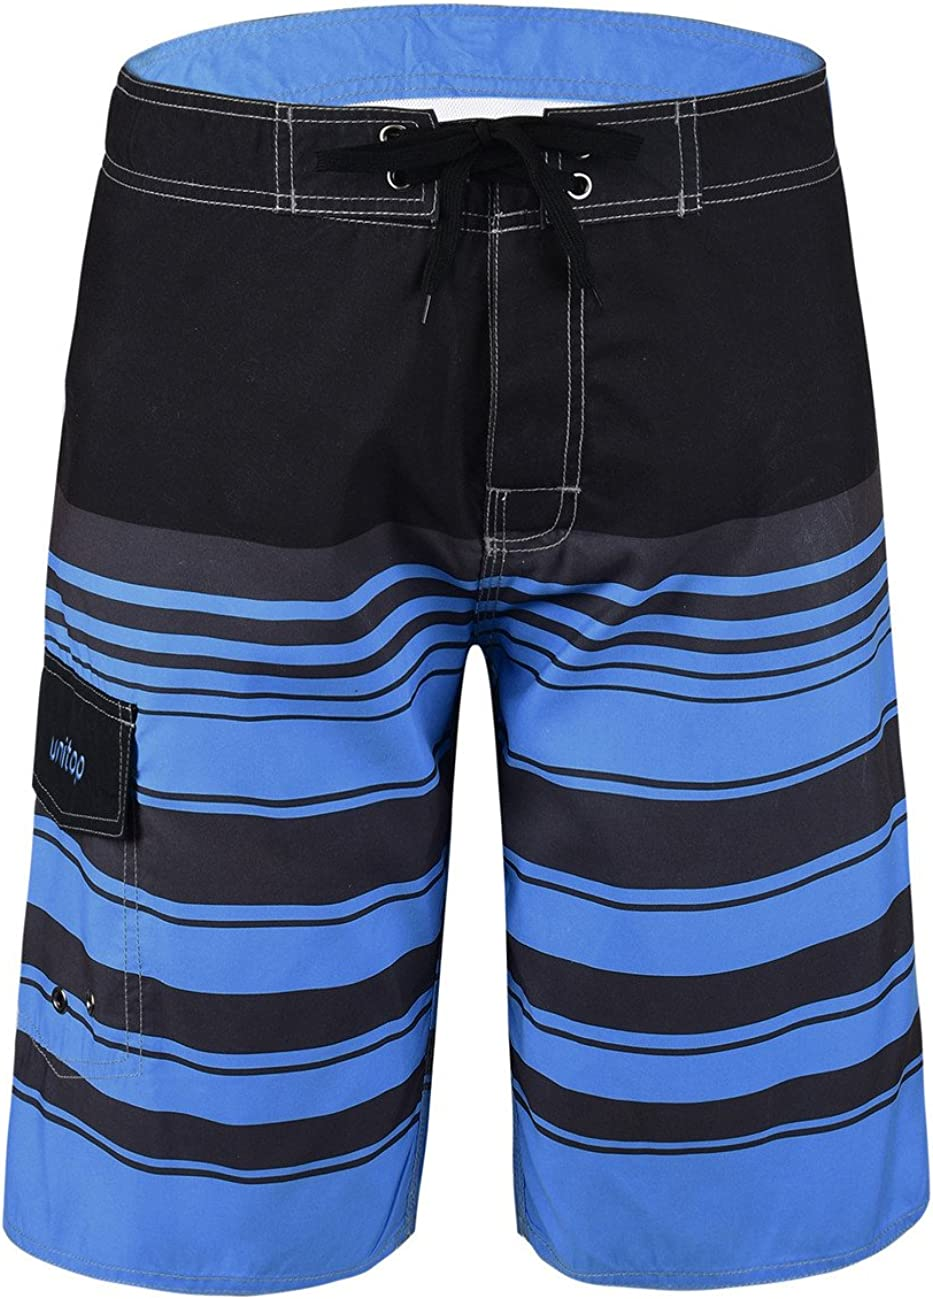 Unitop Men's Swim Trunks Solid Board Shorts with Lining